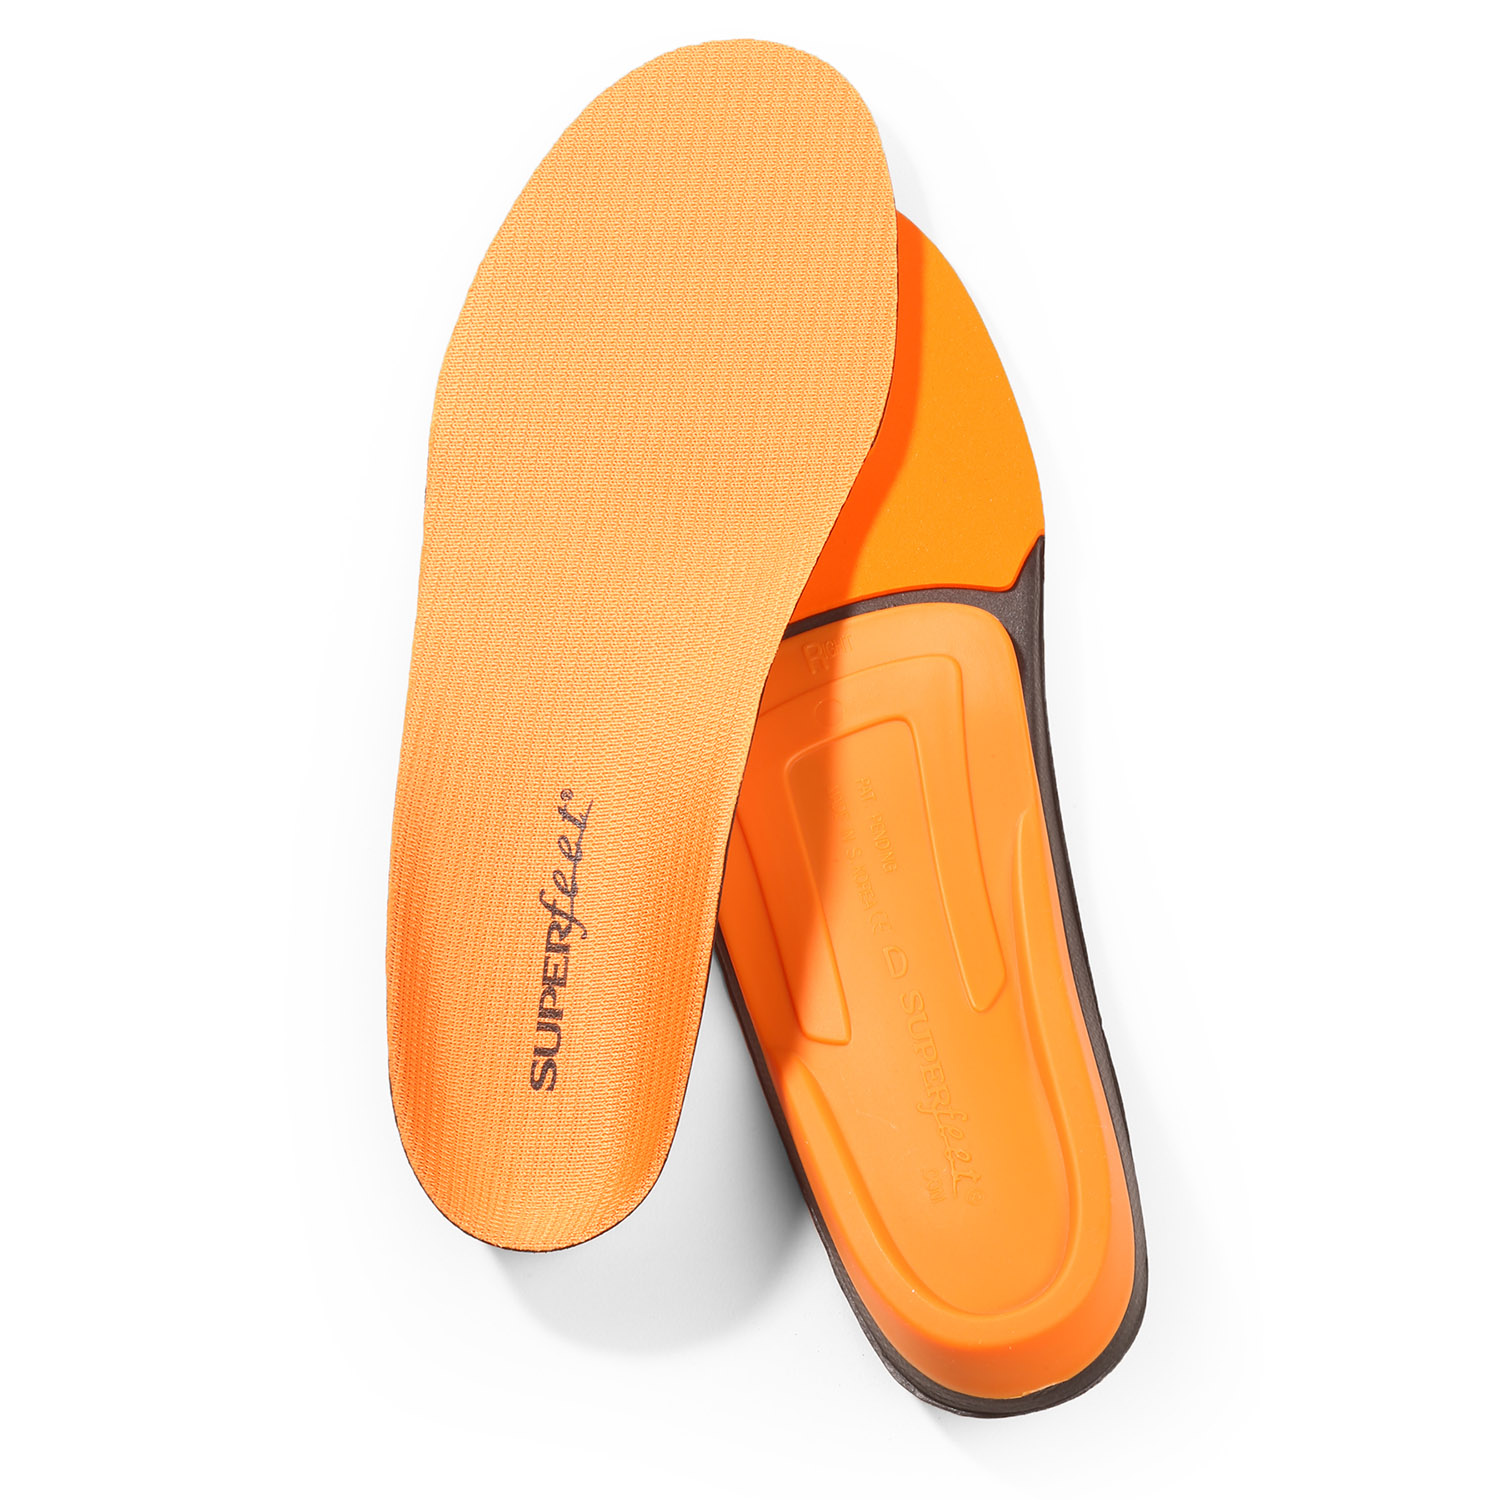 Superfeet Men's Trim-to-Fit Orange Insoles